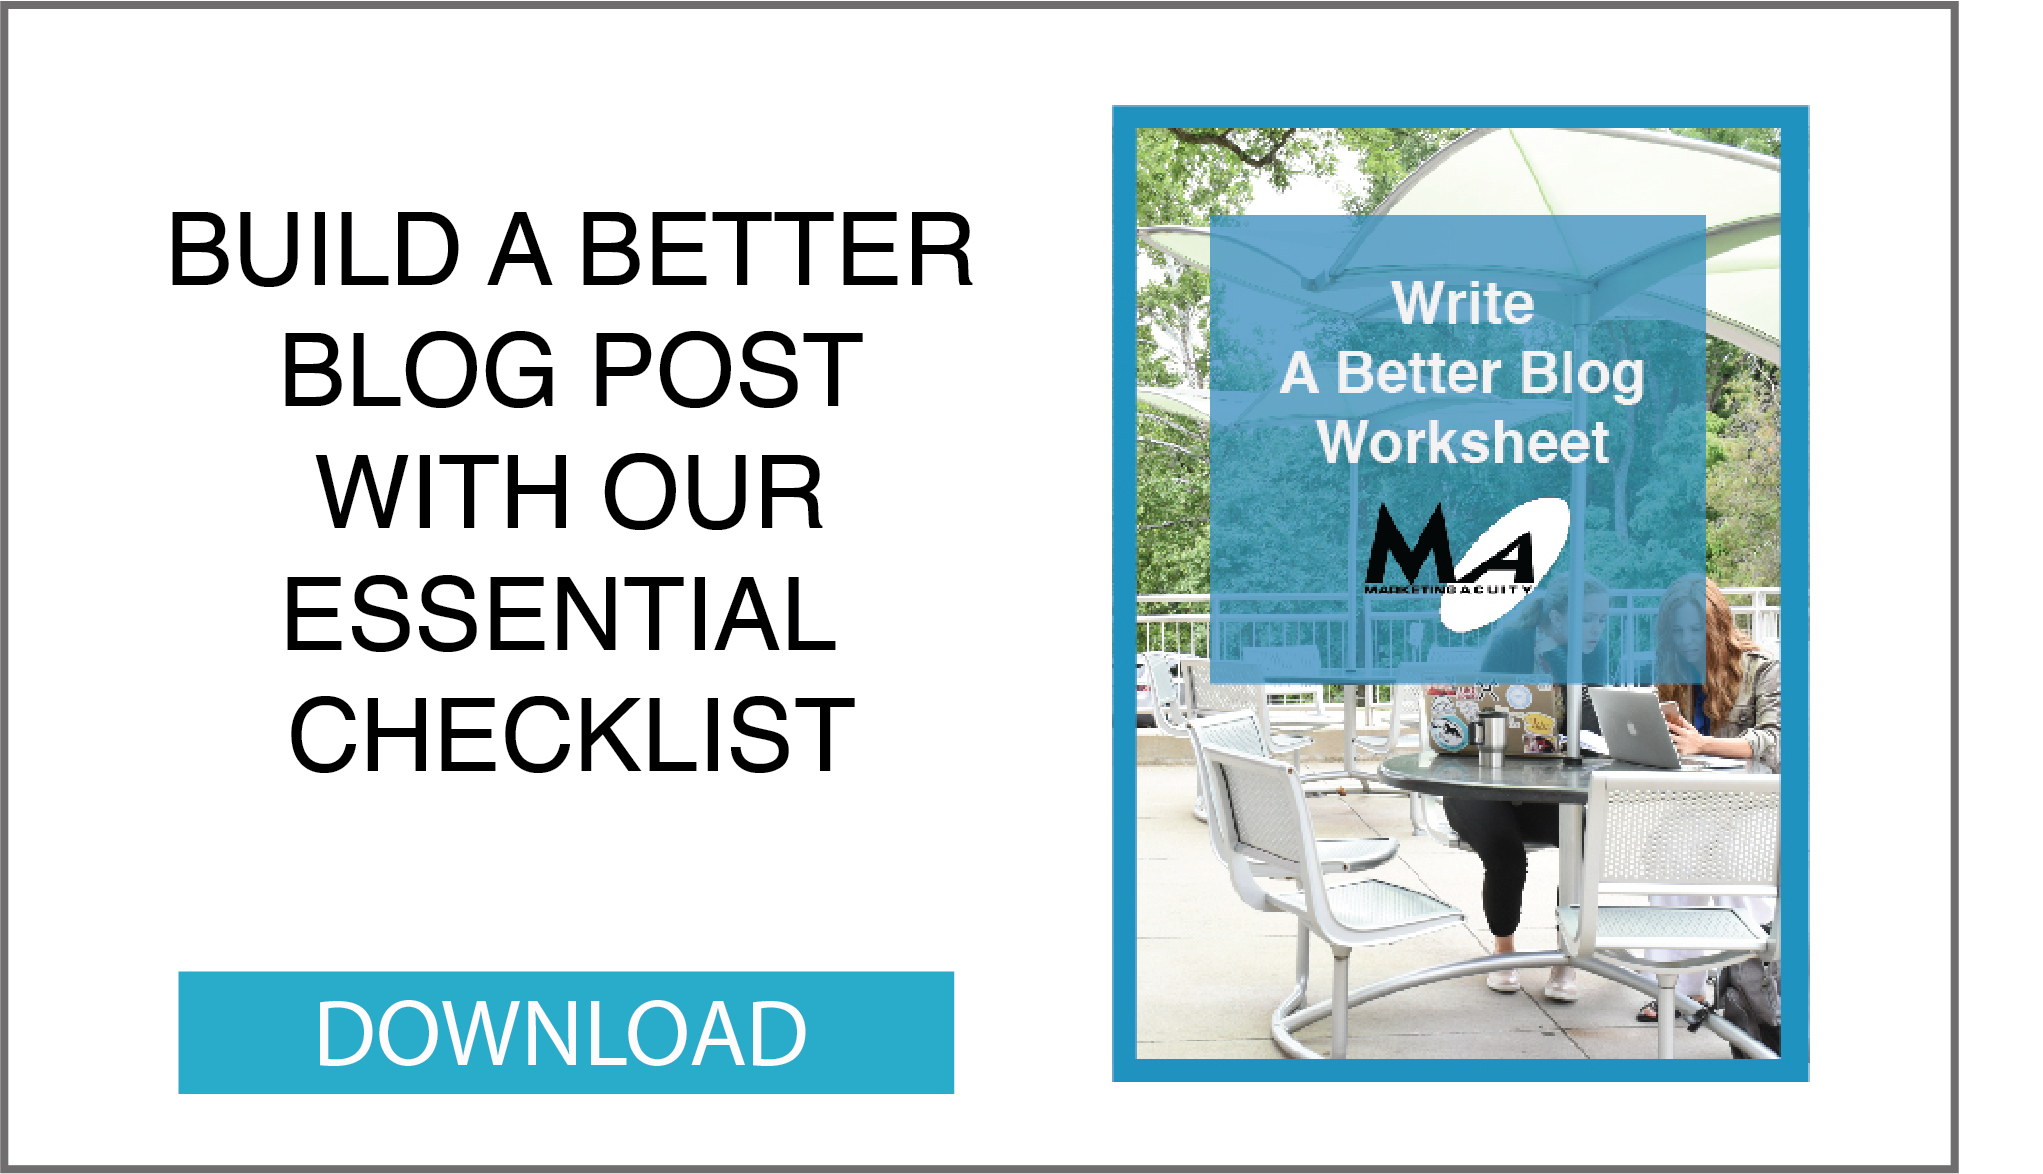 Get the Blogging Worksheet